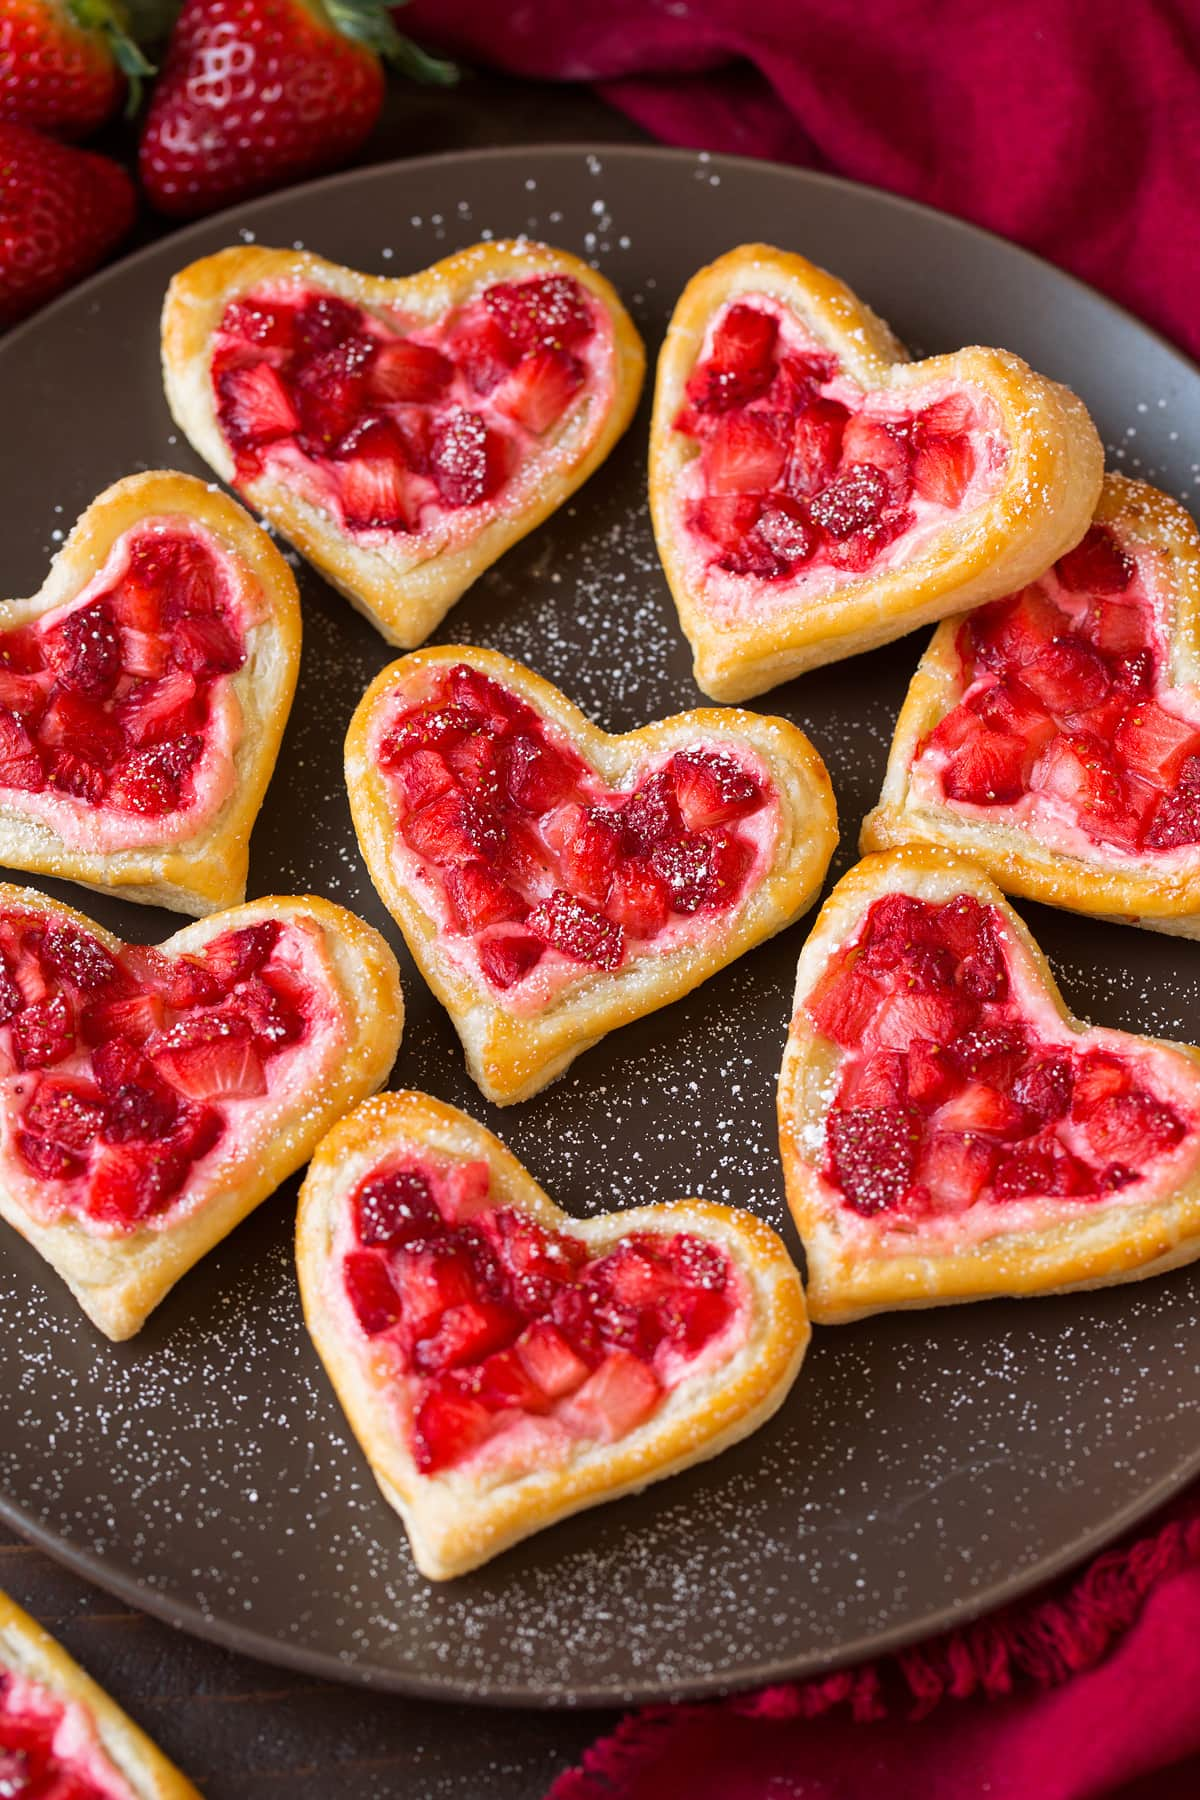 Easy breakfast pastries cut into heart shapes